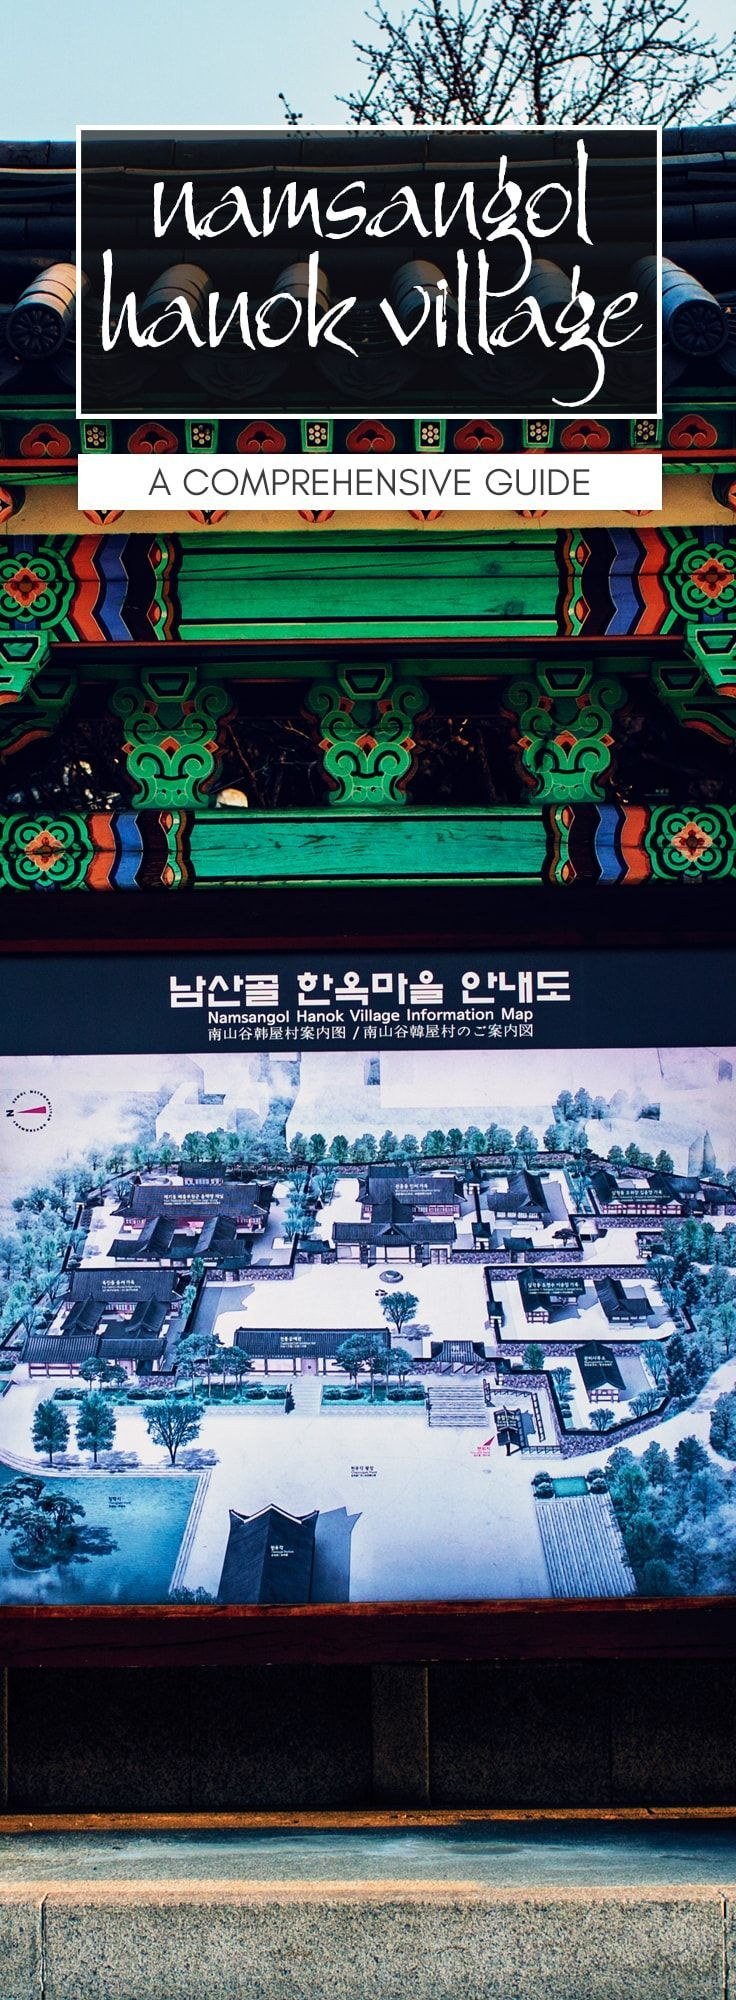 Seoul Travel Guide to Namsangol Hanok Village, a small historical village located in the heart of Seoul South Korea, near Myeongdong with a backdrop of Namsan Tower. Explore the restored hanok homes of court officials and the common folks of the Joseon er